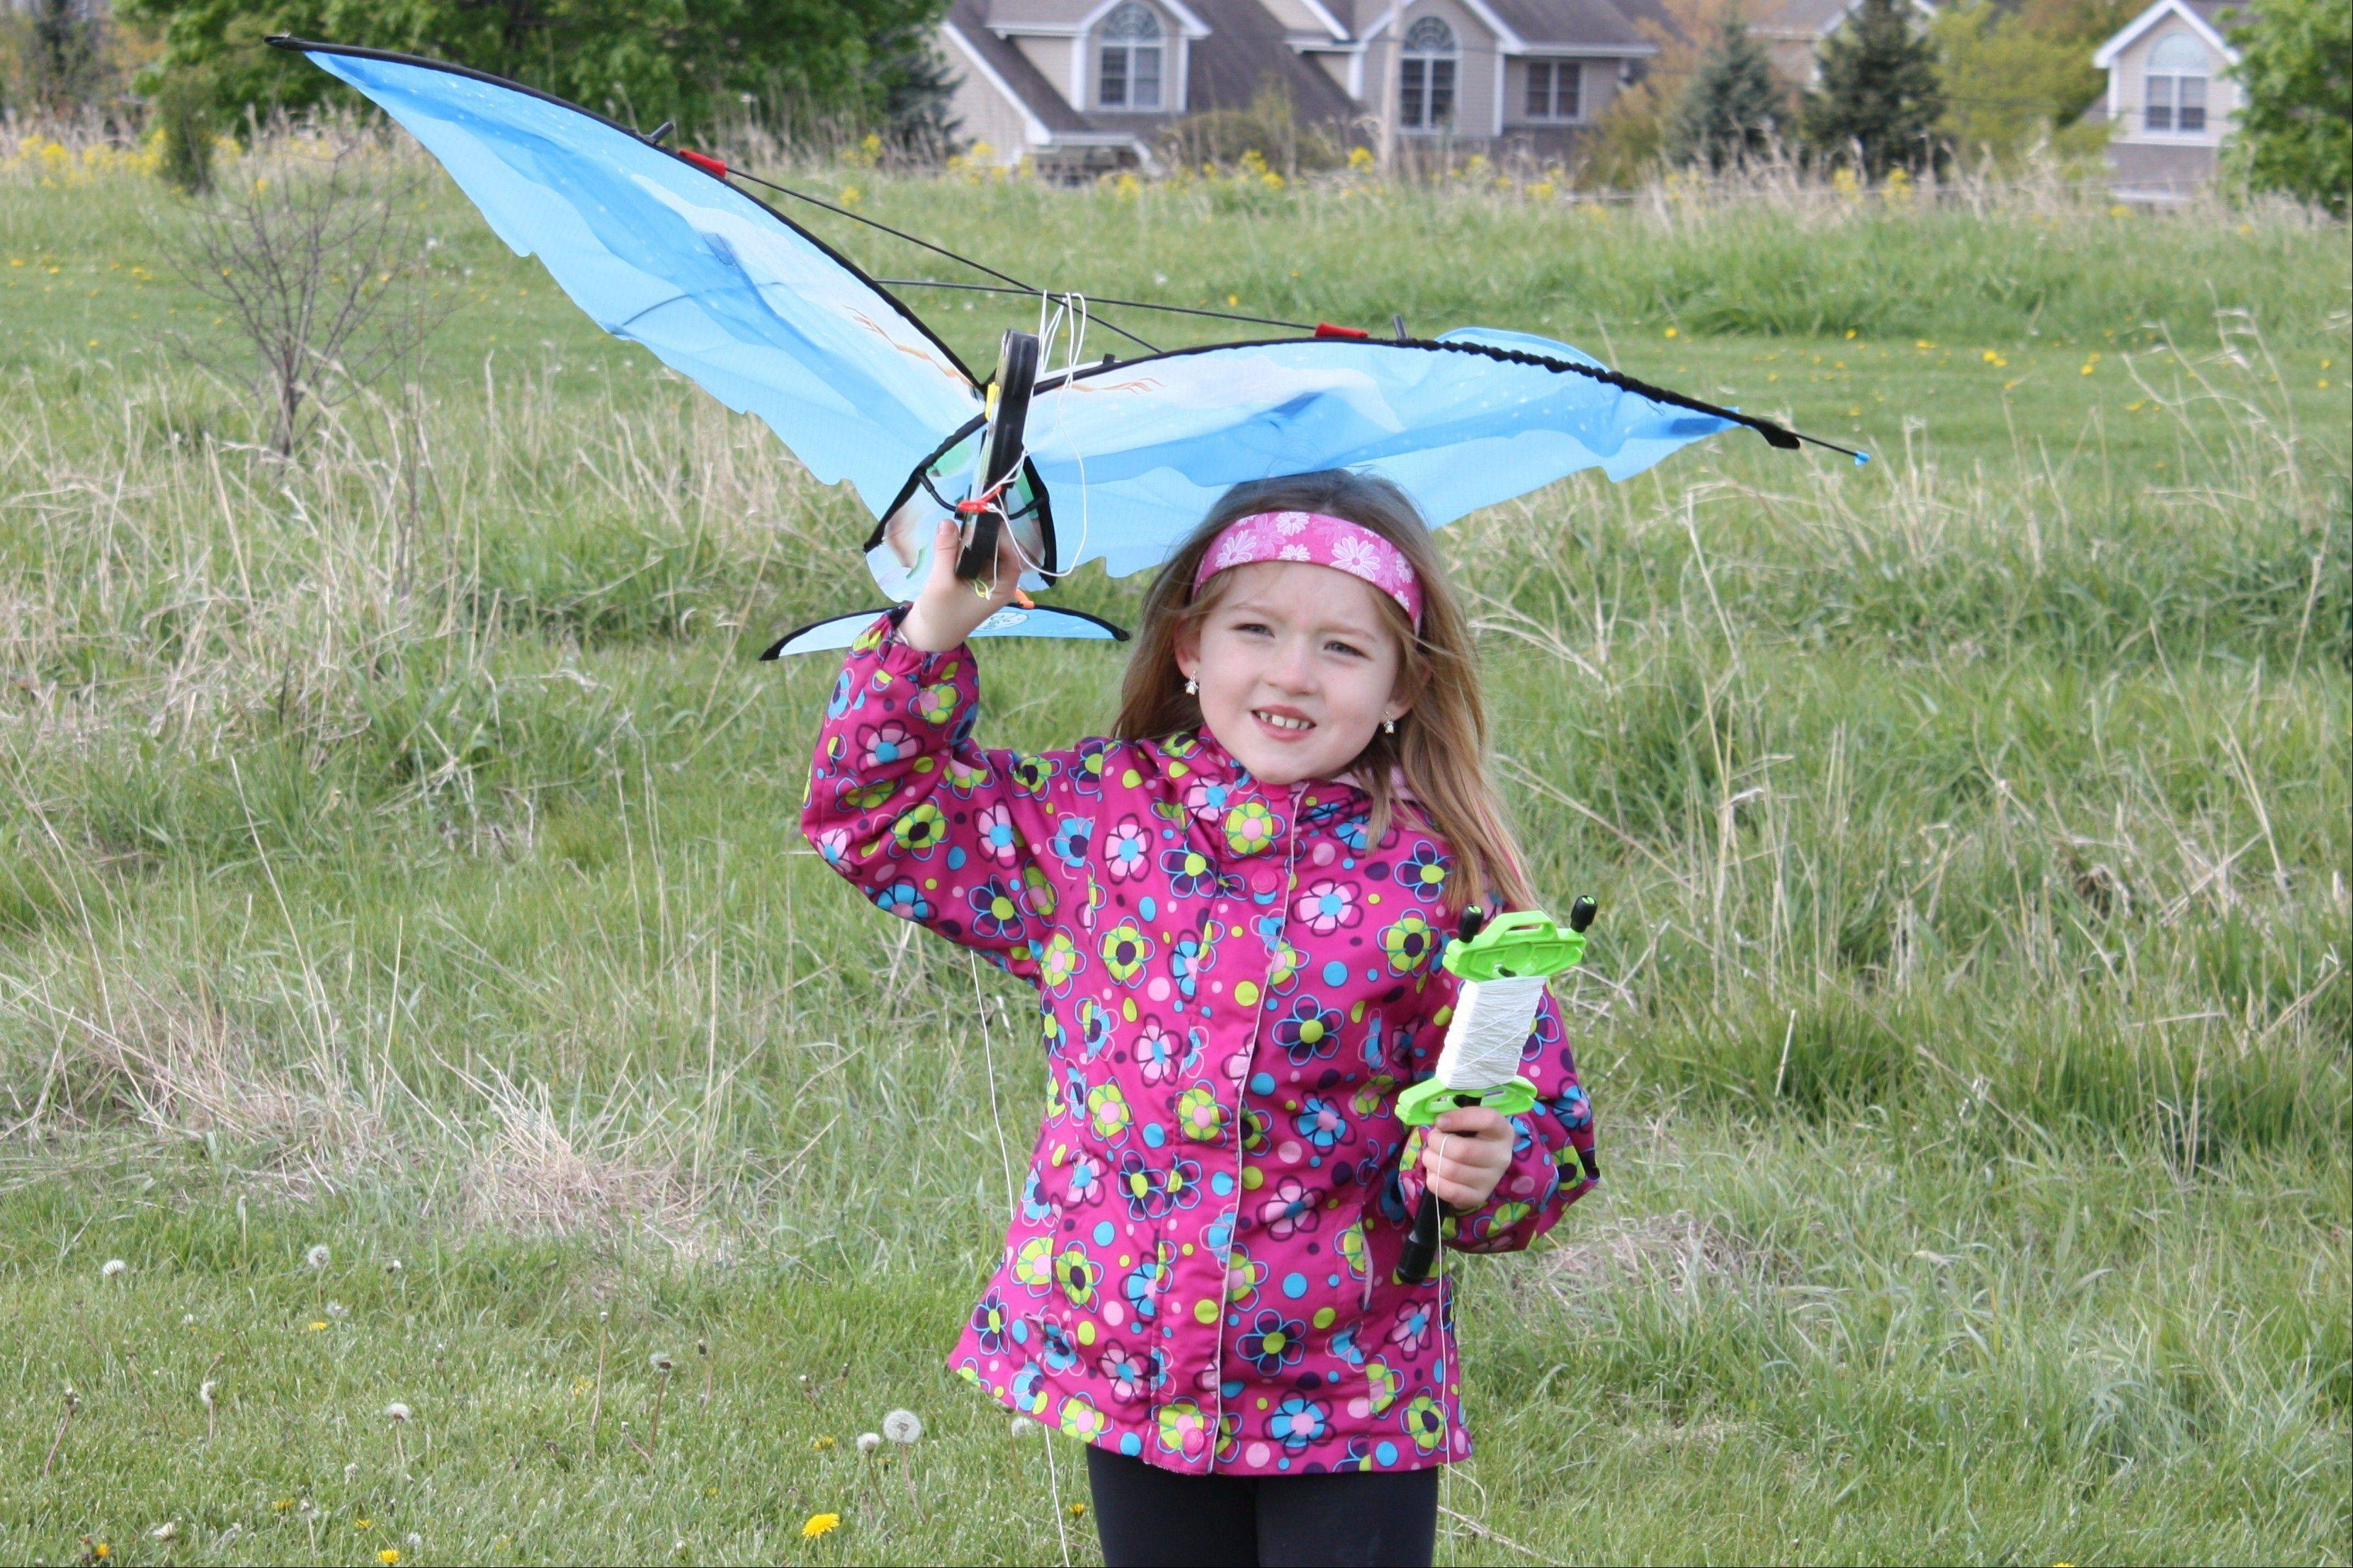 Youngsters can bring their kites for some airborne fun at the eighth annual Flying 4 Kids event at the Margreth Riemer Reservoir in Palatine.